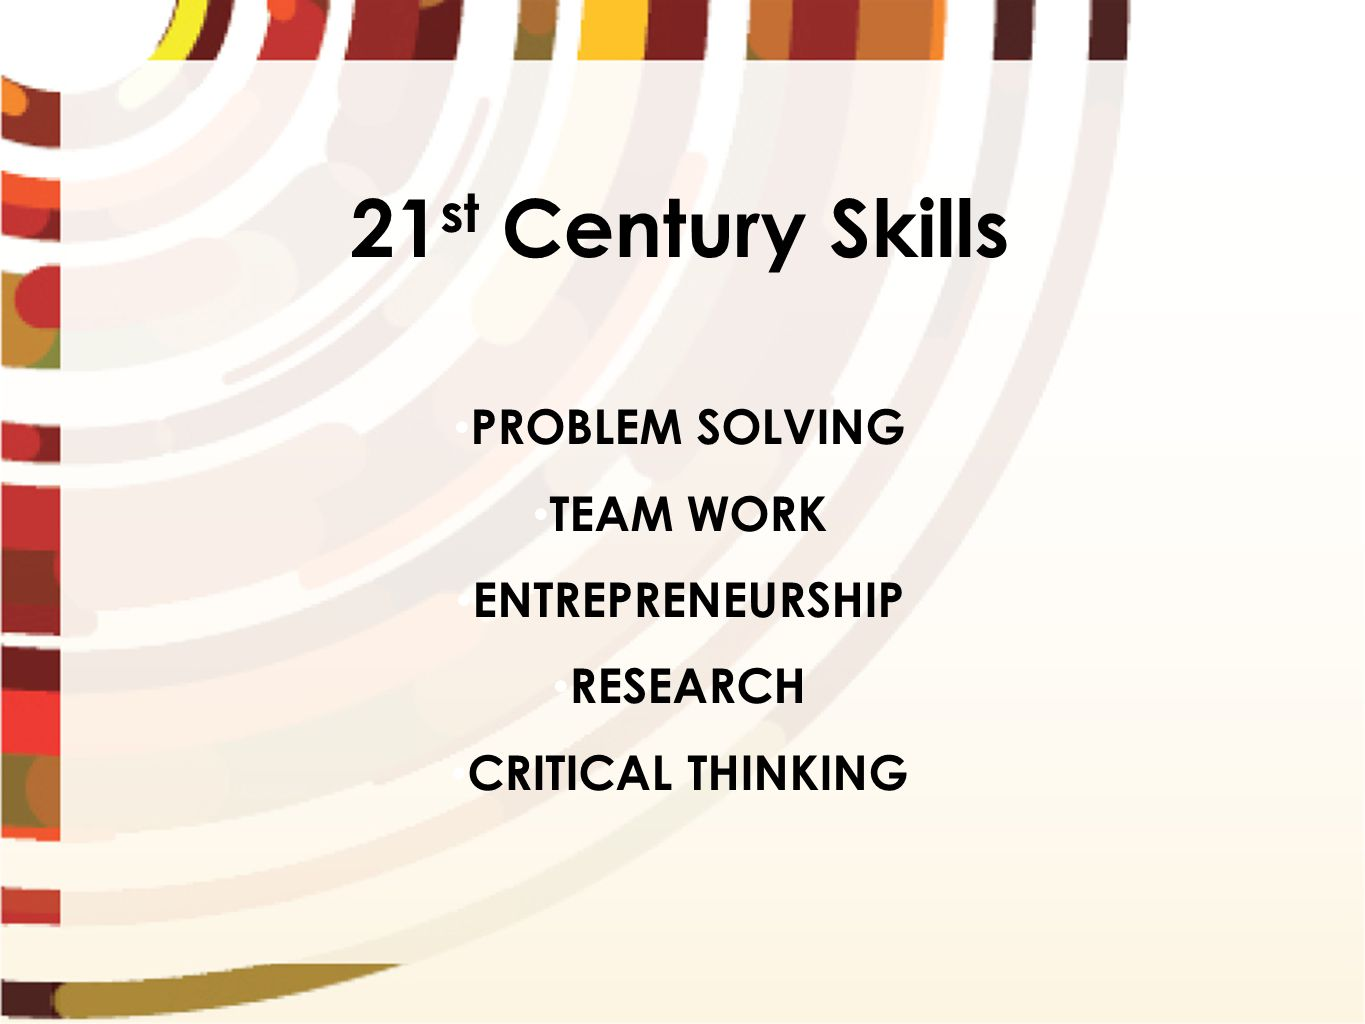 21 st Century Skills PROBLEM SOLVING TEAM WORK ENTREPRENEURSHIP RESEARCH CRITICAL THINKING